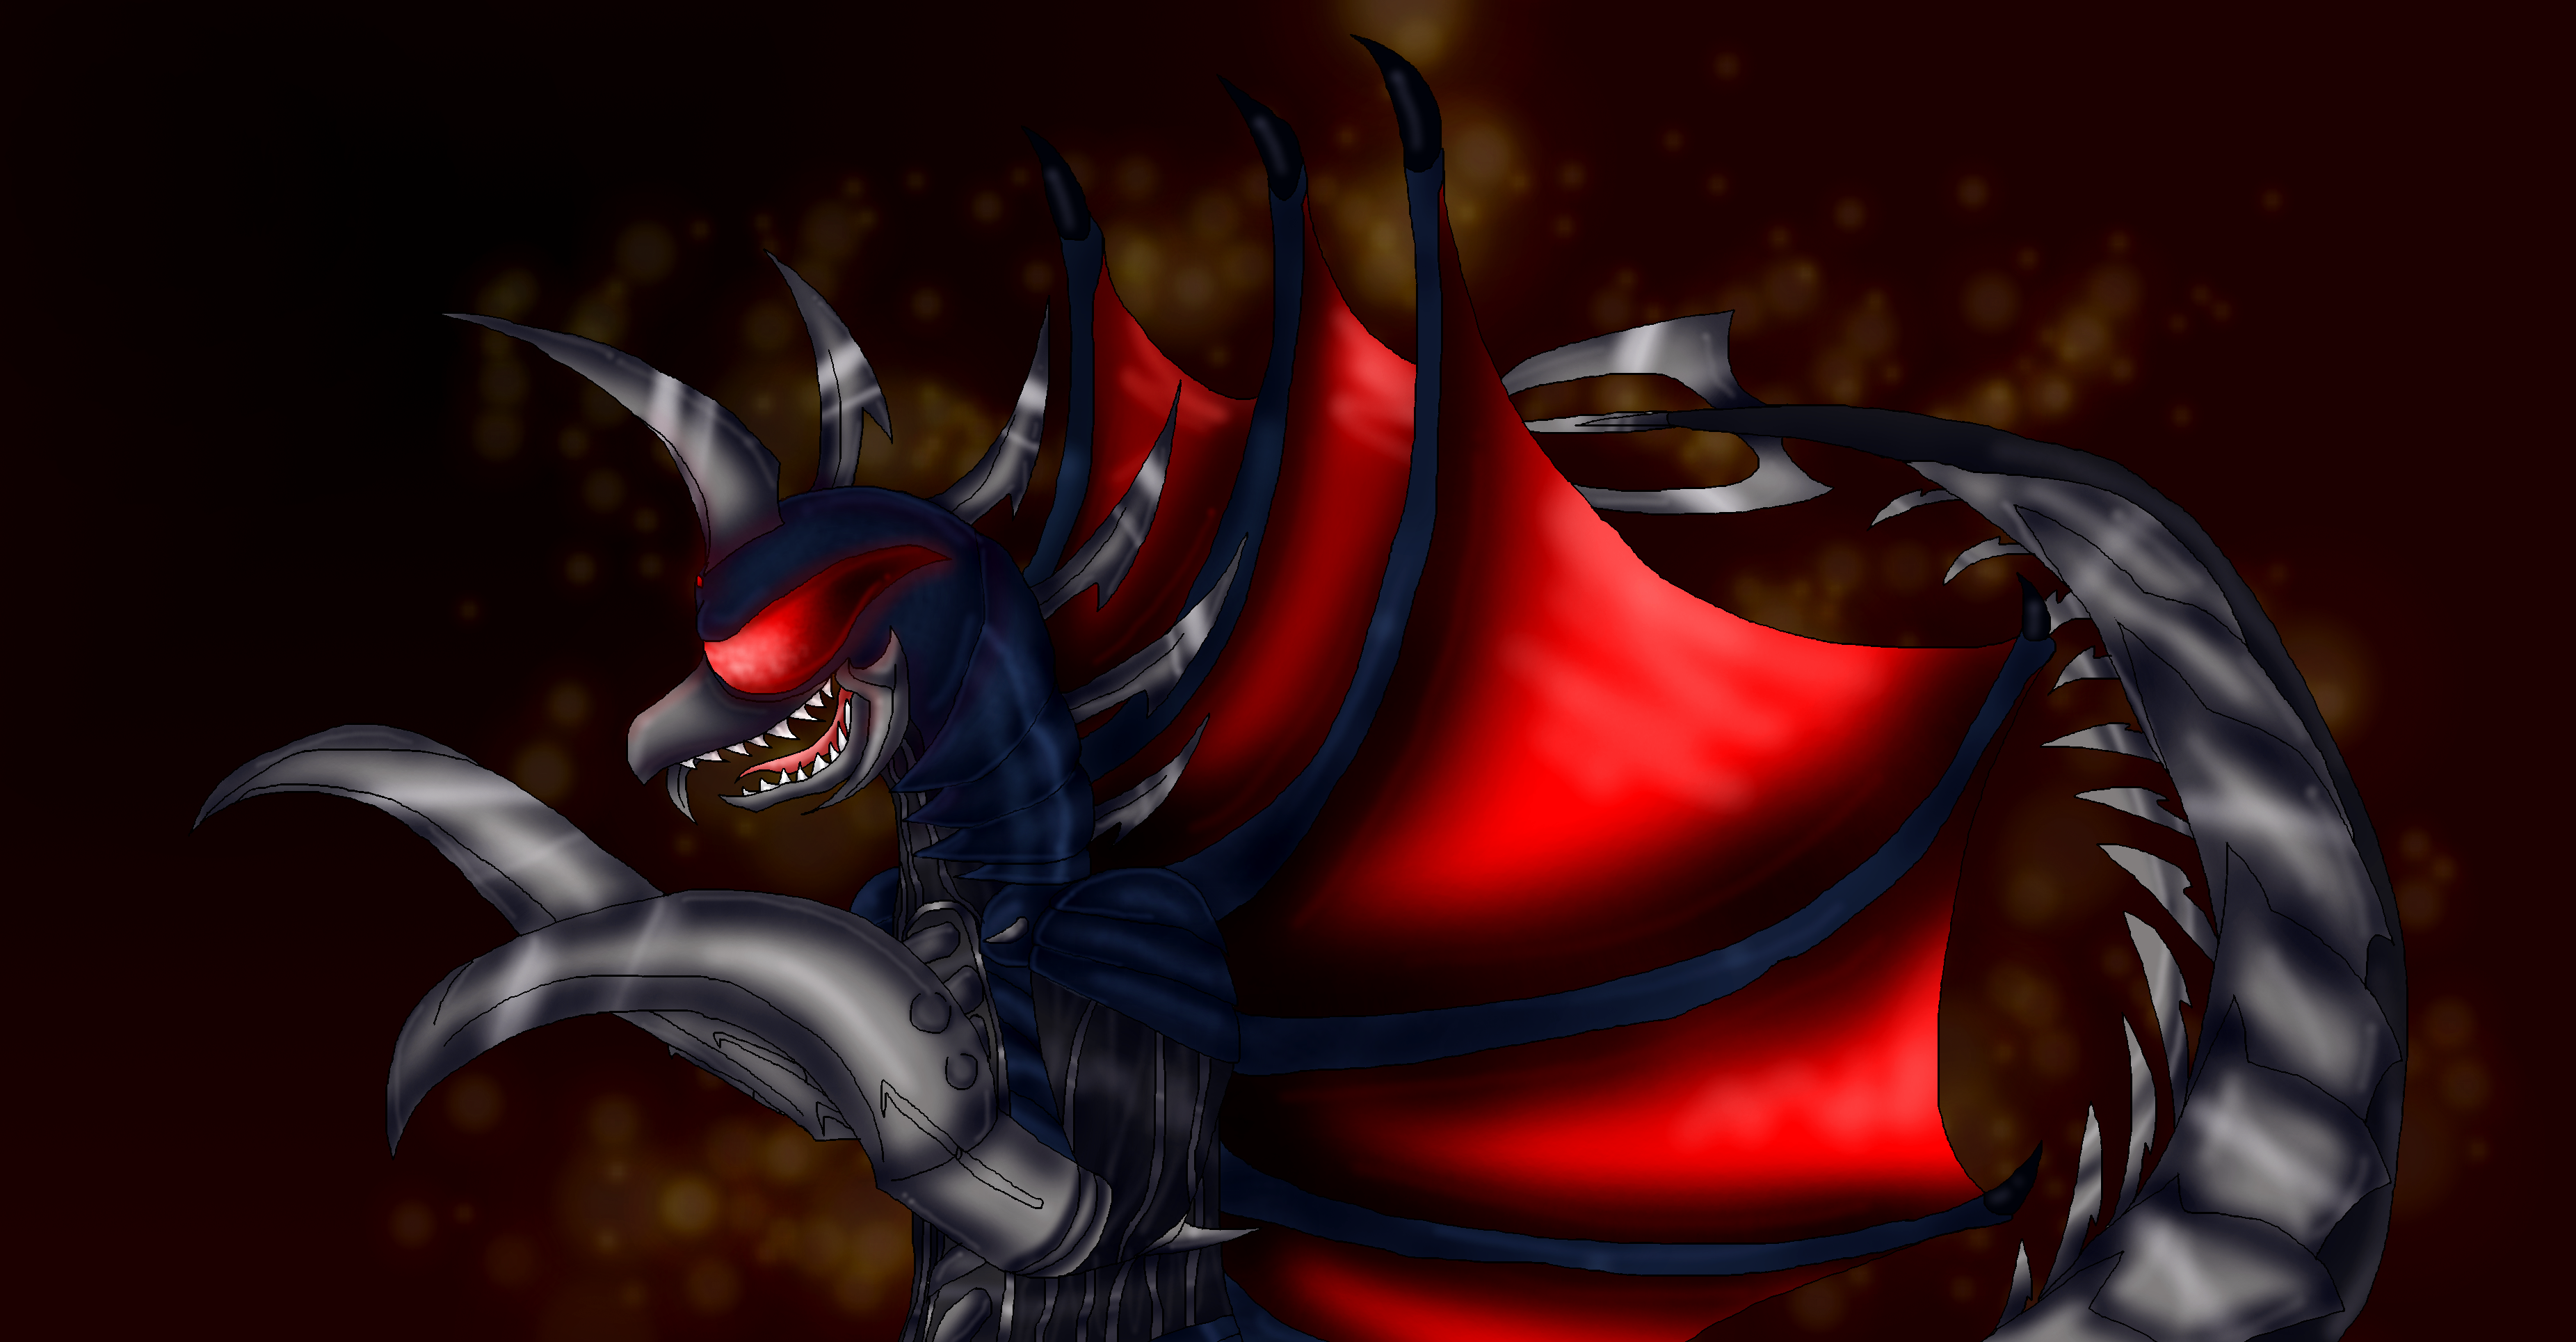 Gigan Final Wars by PlagueDogs123 on DeviantArt